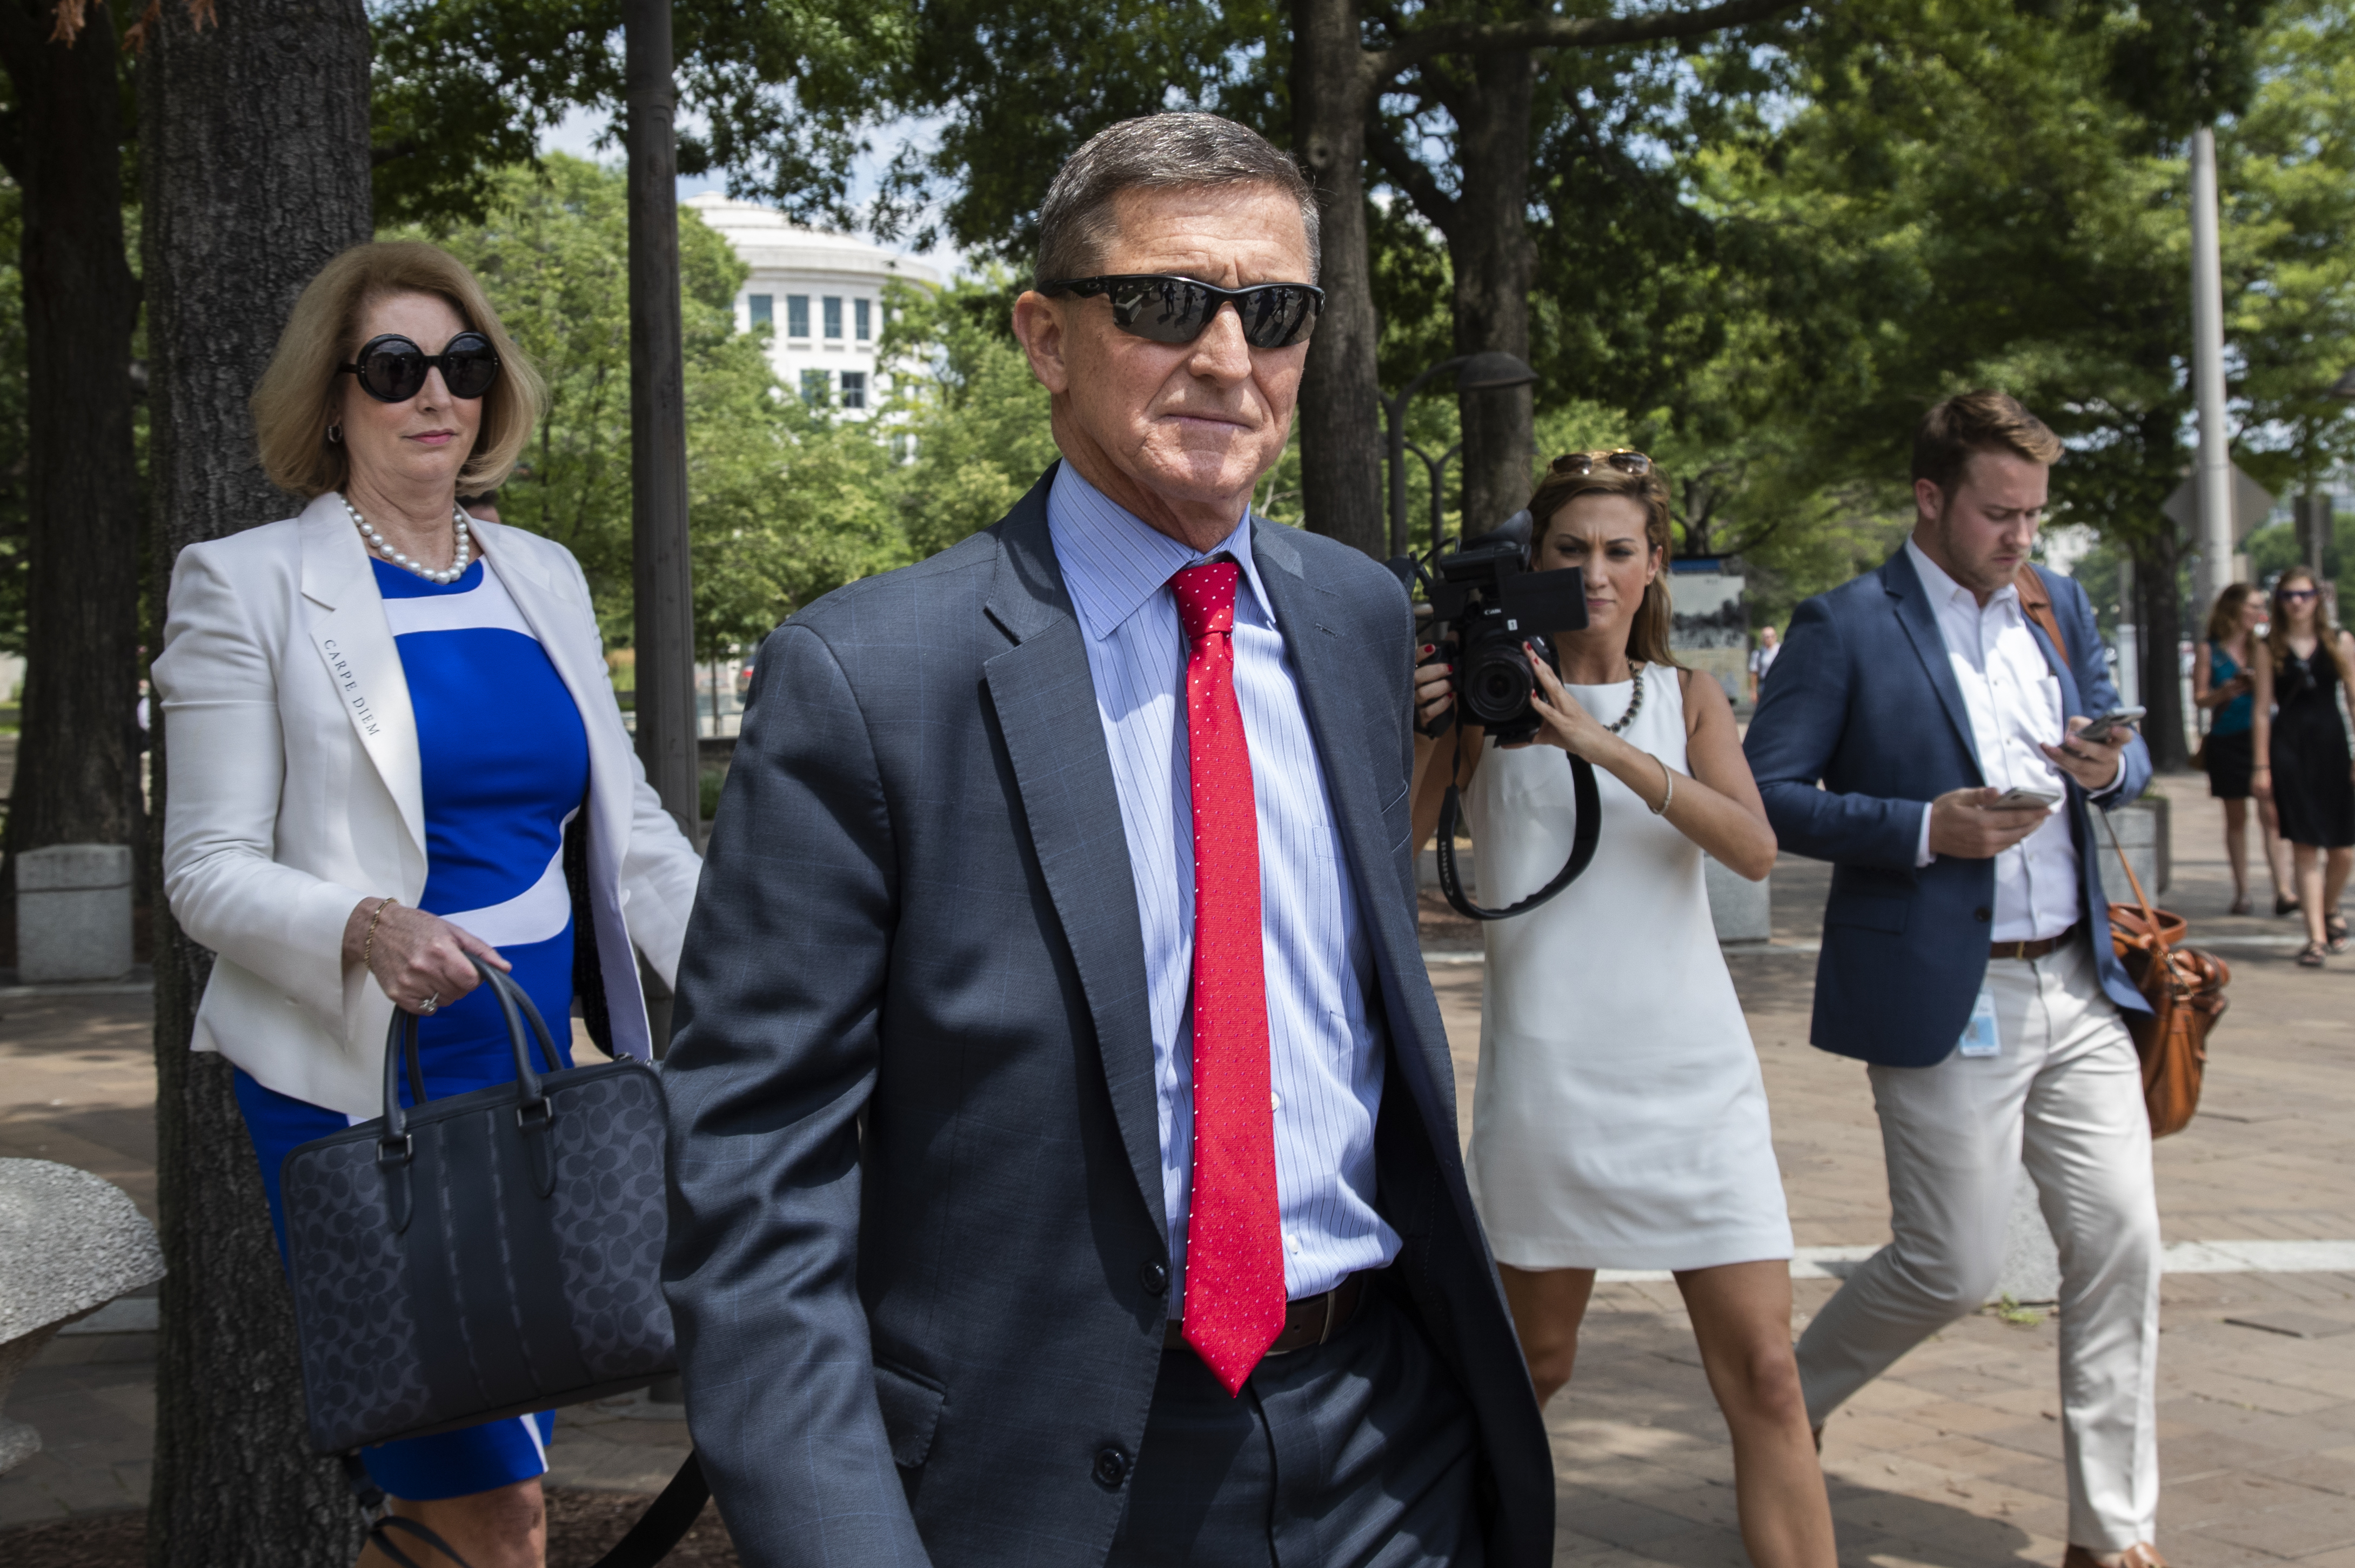 Feds not ready to take sentencing position in Flynn case